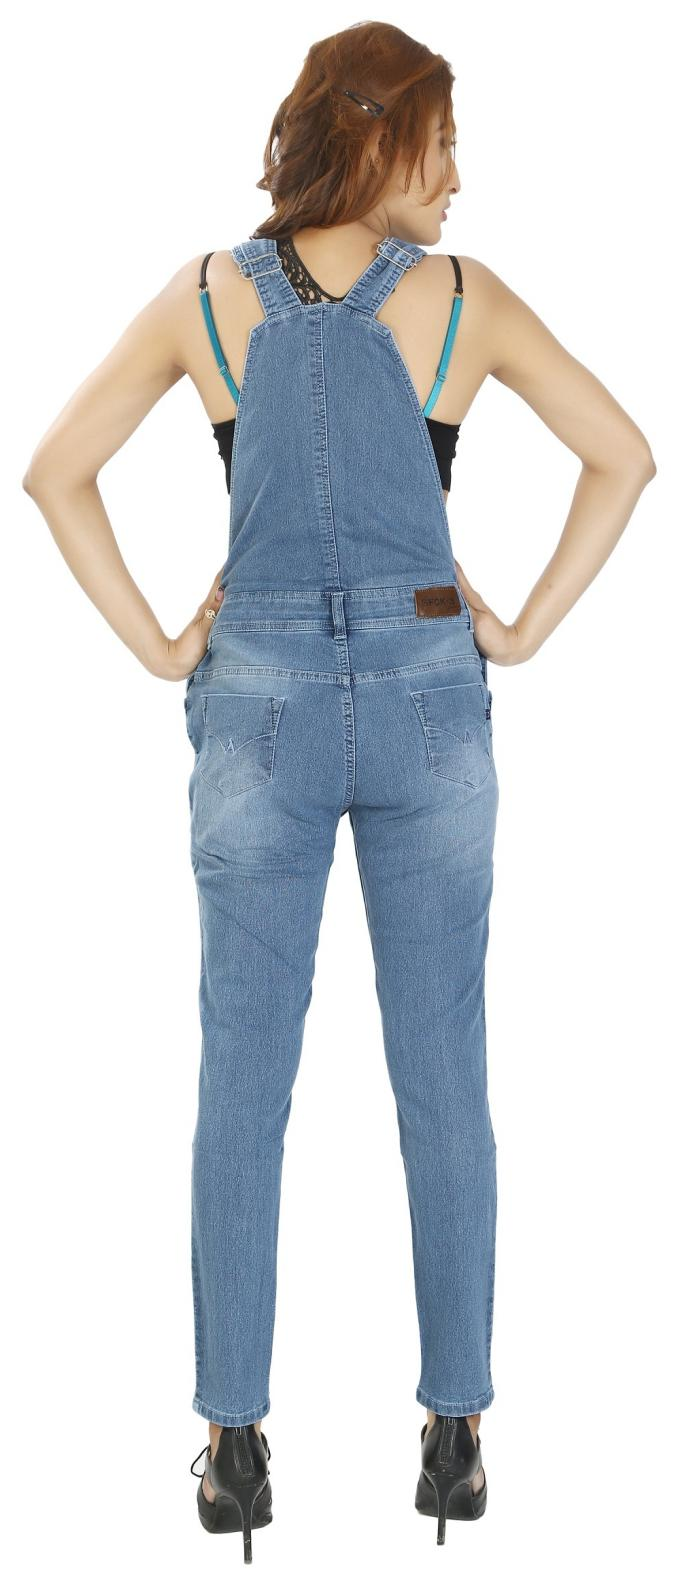 b68e5f5397b0 Buy Fck-3 Women s Denim Dungree Online at Low Prices in India -  Paytmmall.com